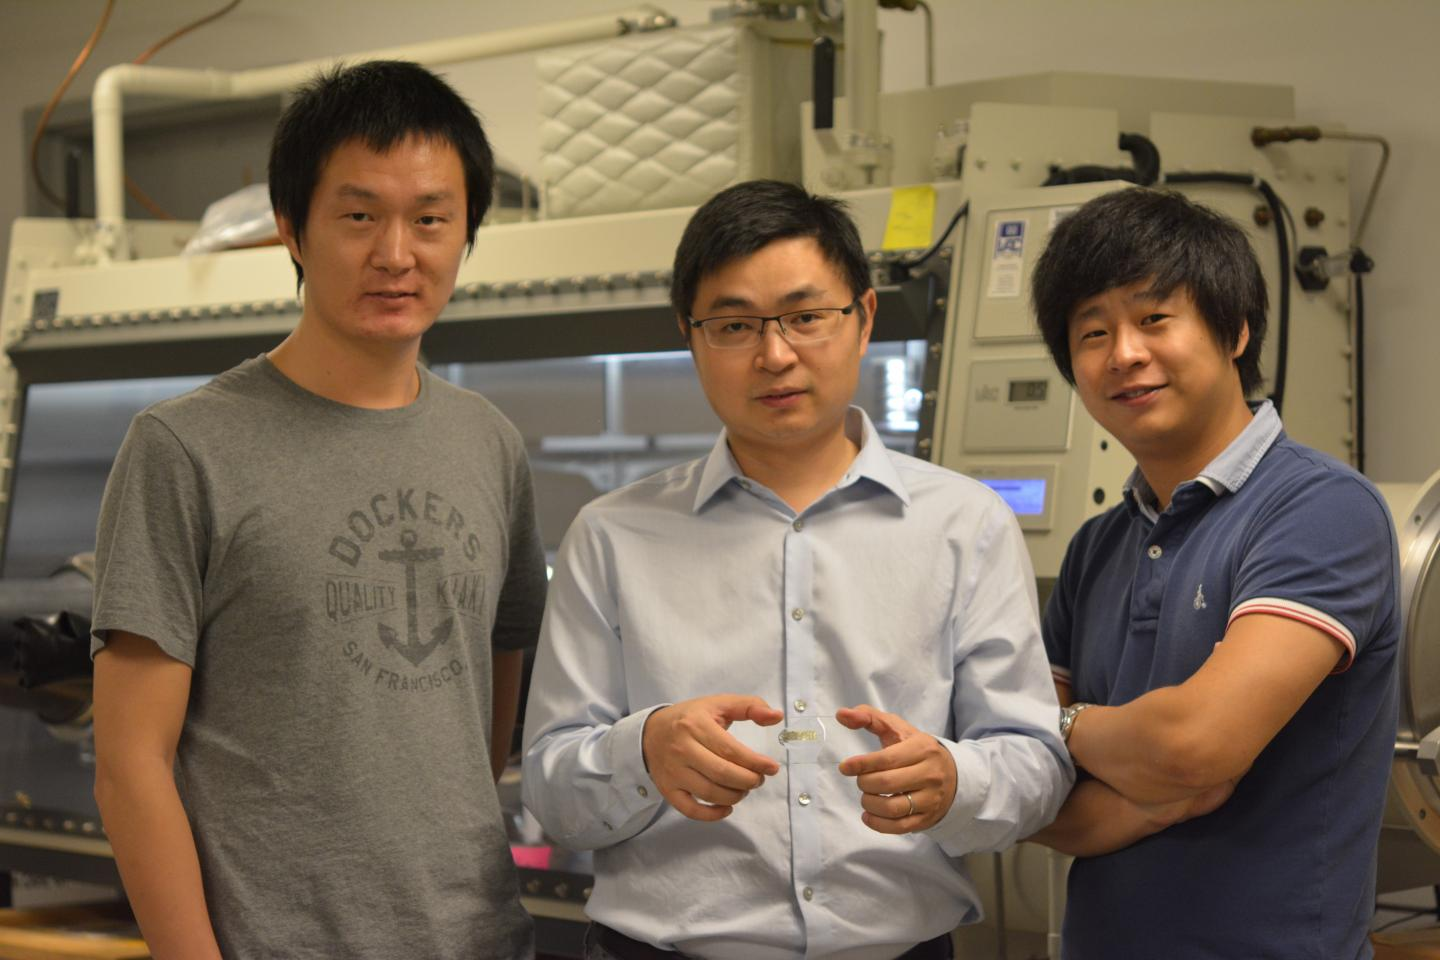 Cunjiang Yu, Bill D. Cook assistant professor of mechanical engineering at the University of Houston, center, and co-first authors Xu Wang, left, and Kyoseung Sim, right (University of Houston)